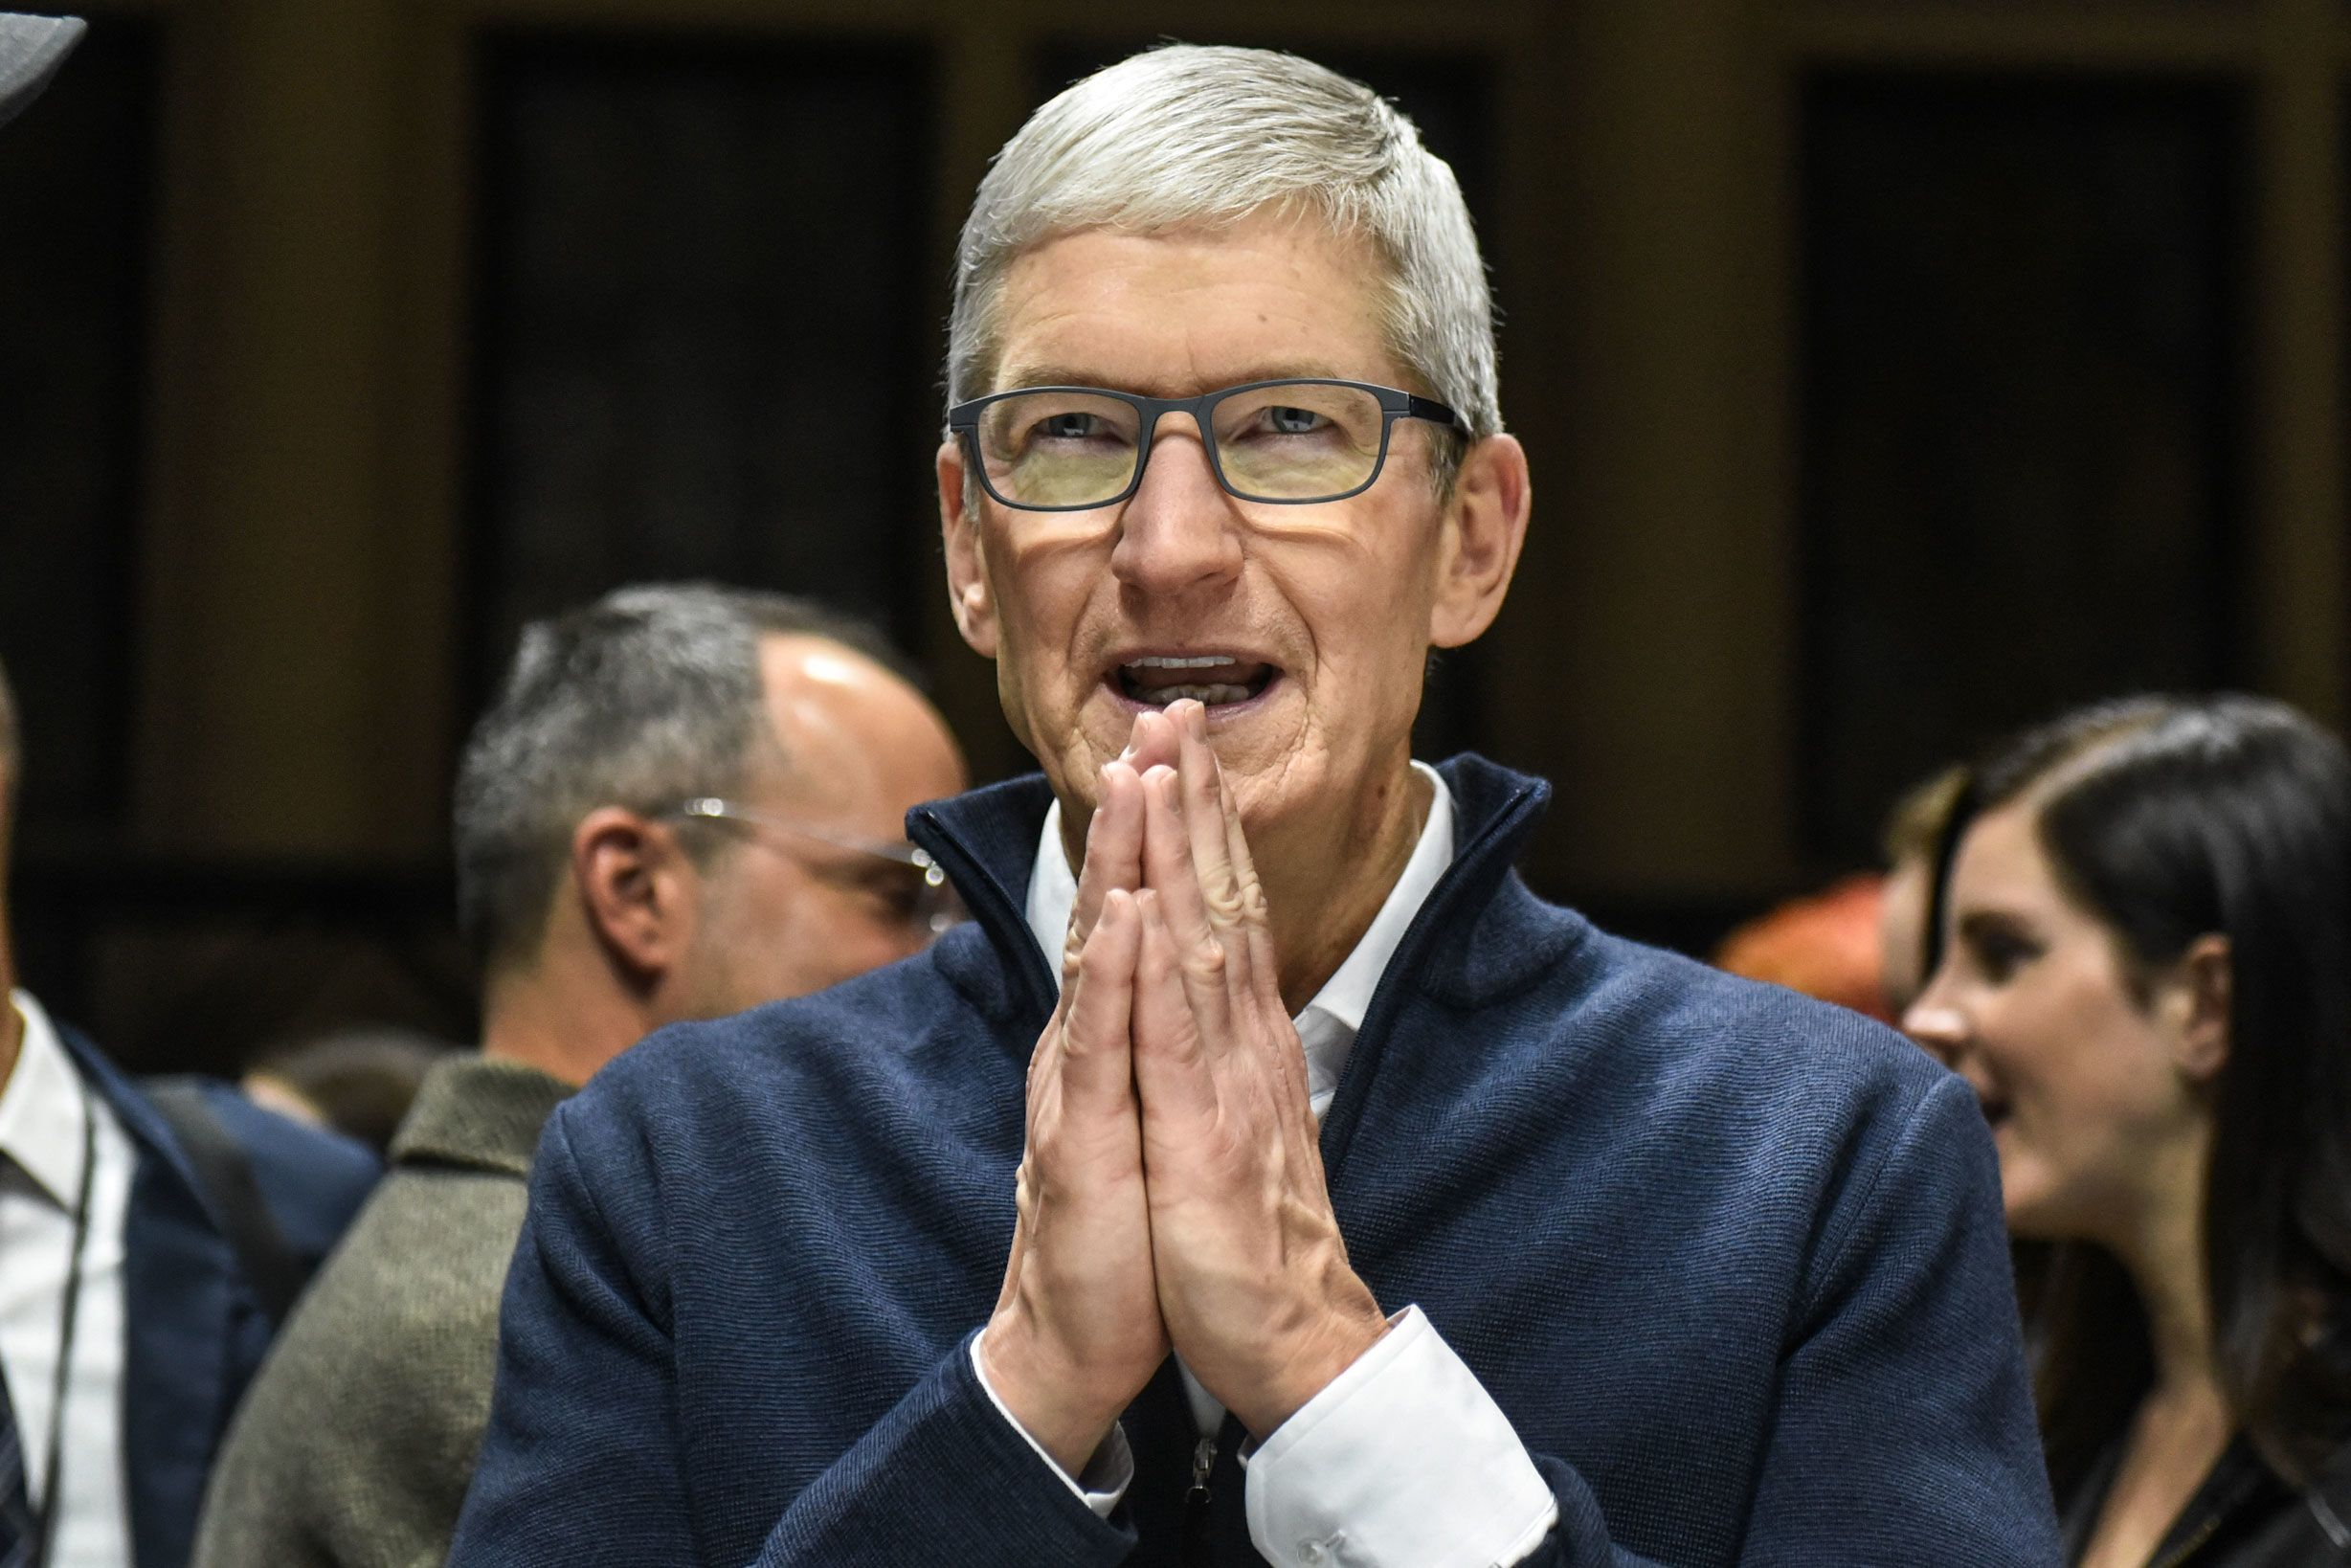 Apple ceo tim cook to the class of 2019 my generation has